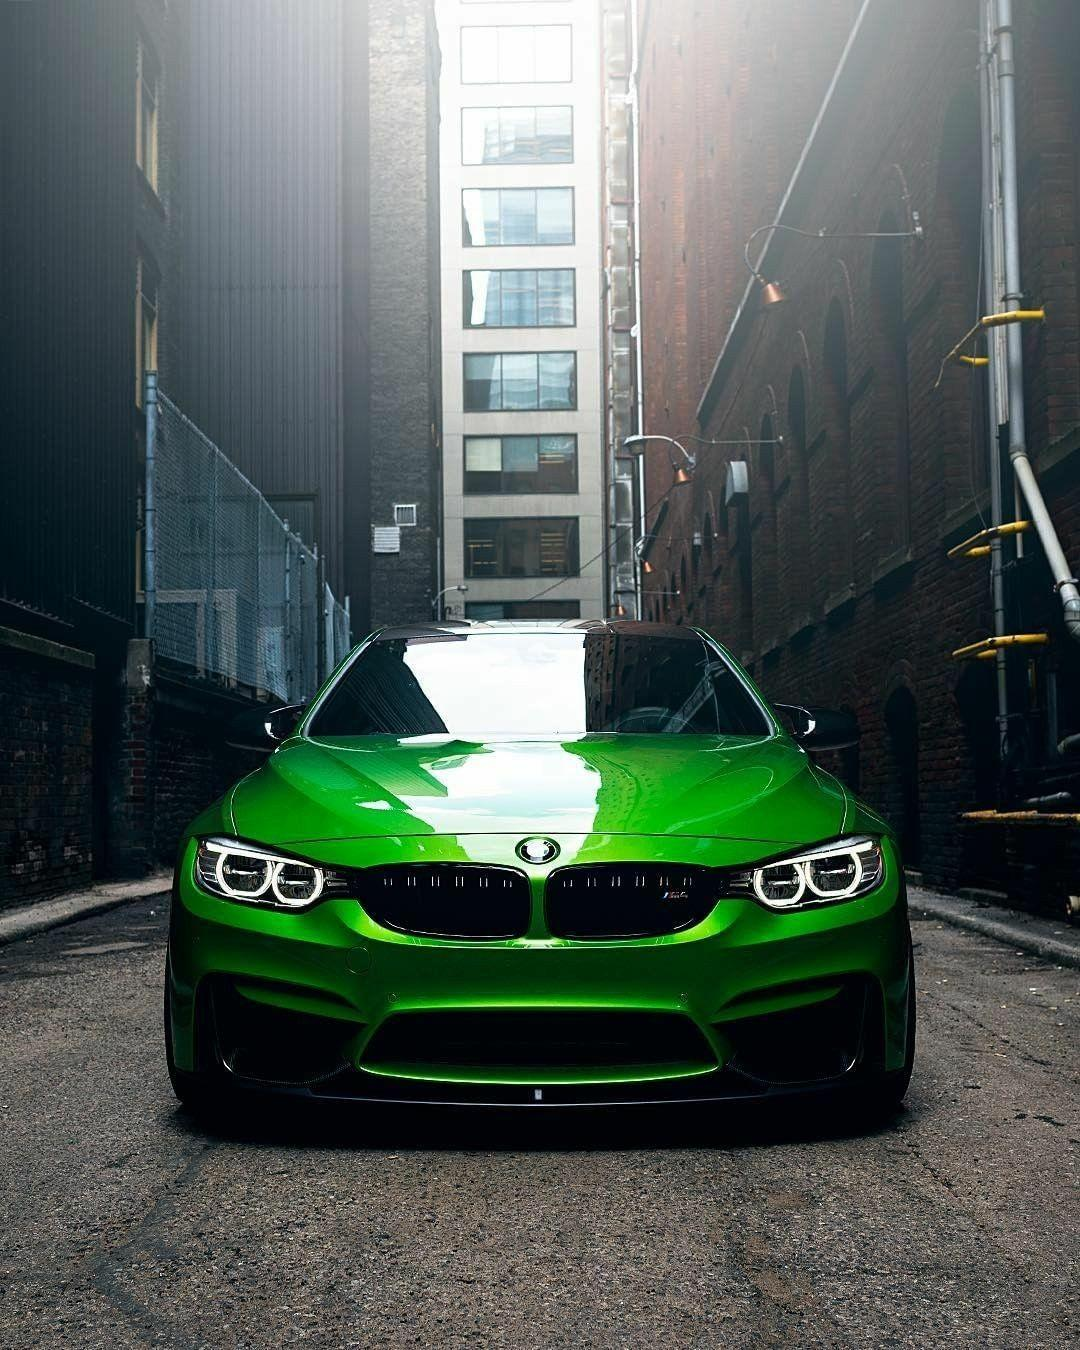 BMW M4 Full Hd Mobile Wallpapers - Wallpaper Cave